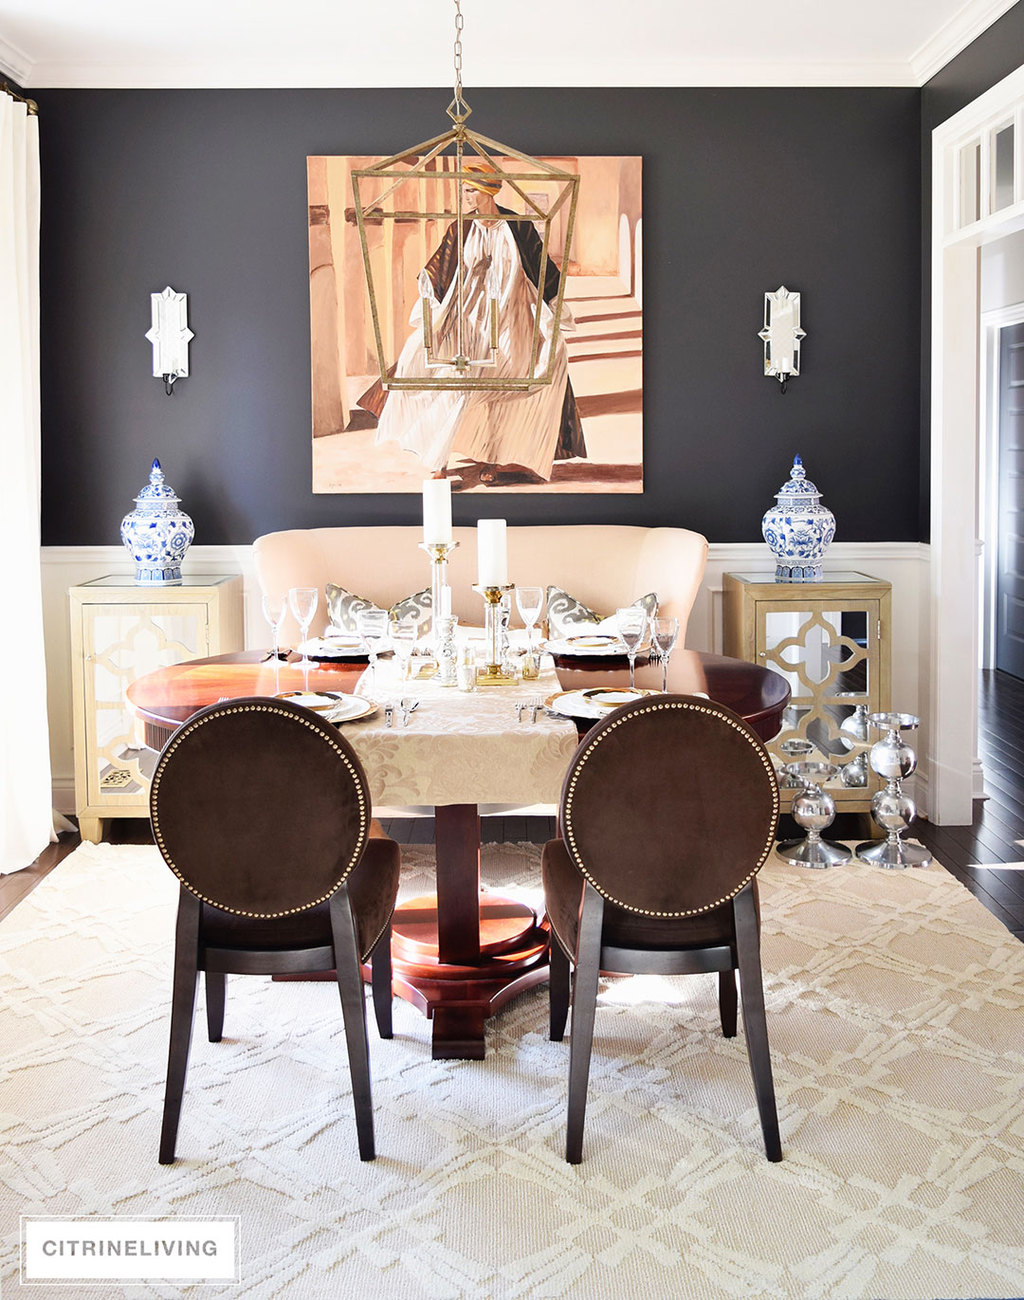 CitrineLiving_Spring_Dining_Room21 Dining Room Black Walls Neutral Rug  Brass Pendant Part 95